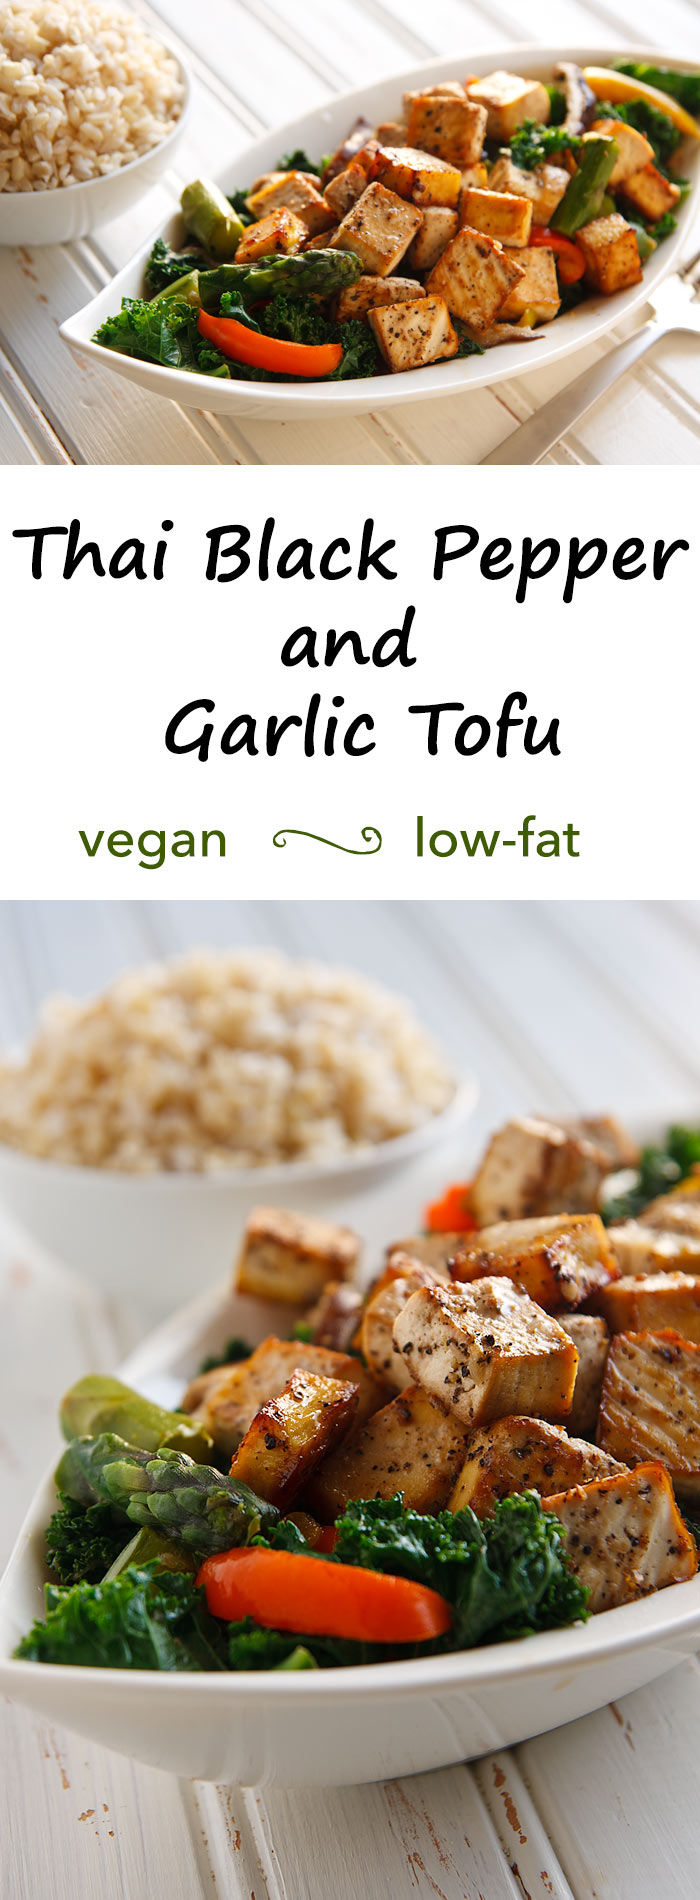 Thai Black Pepper and Garlic Tofu: Peppery cubes of tofu top steam-fried vegetables that have the lightest of garlic sauces in this low-fat, vegan Thai tofu dish.